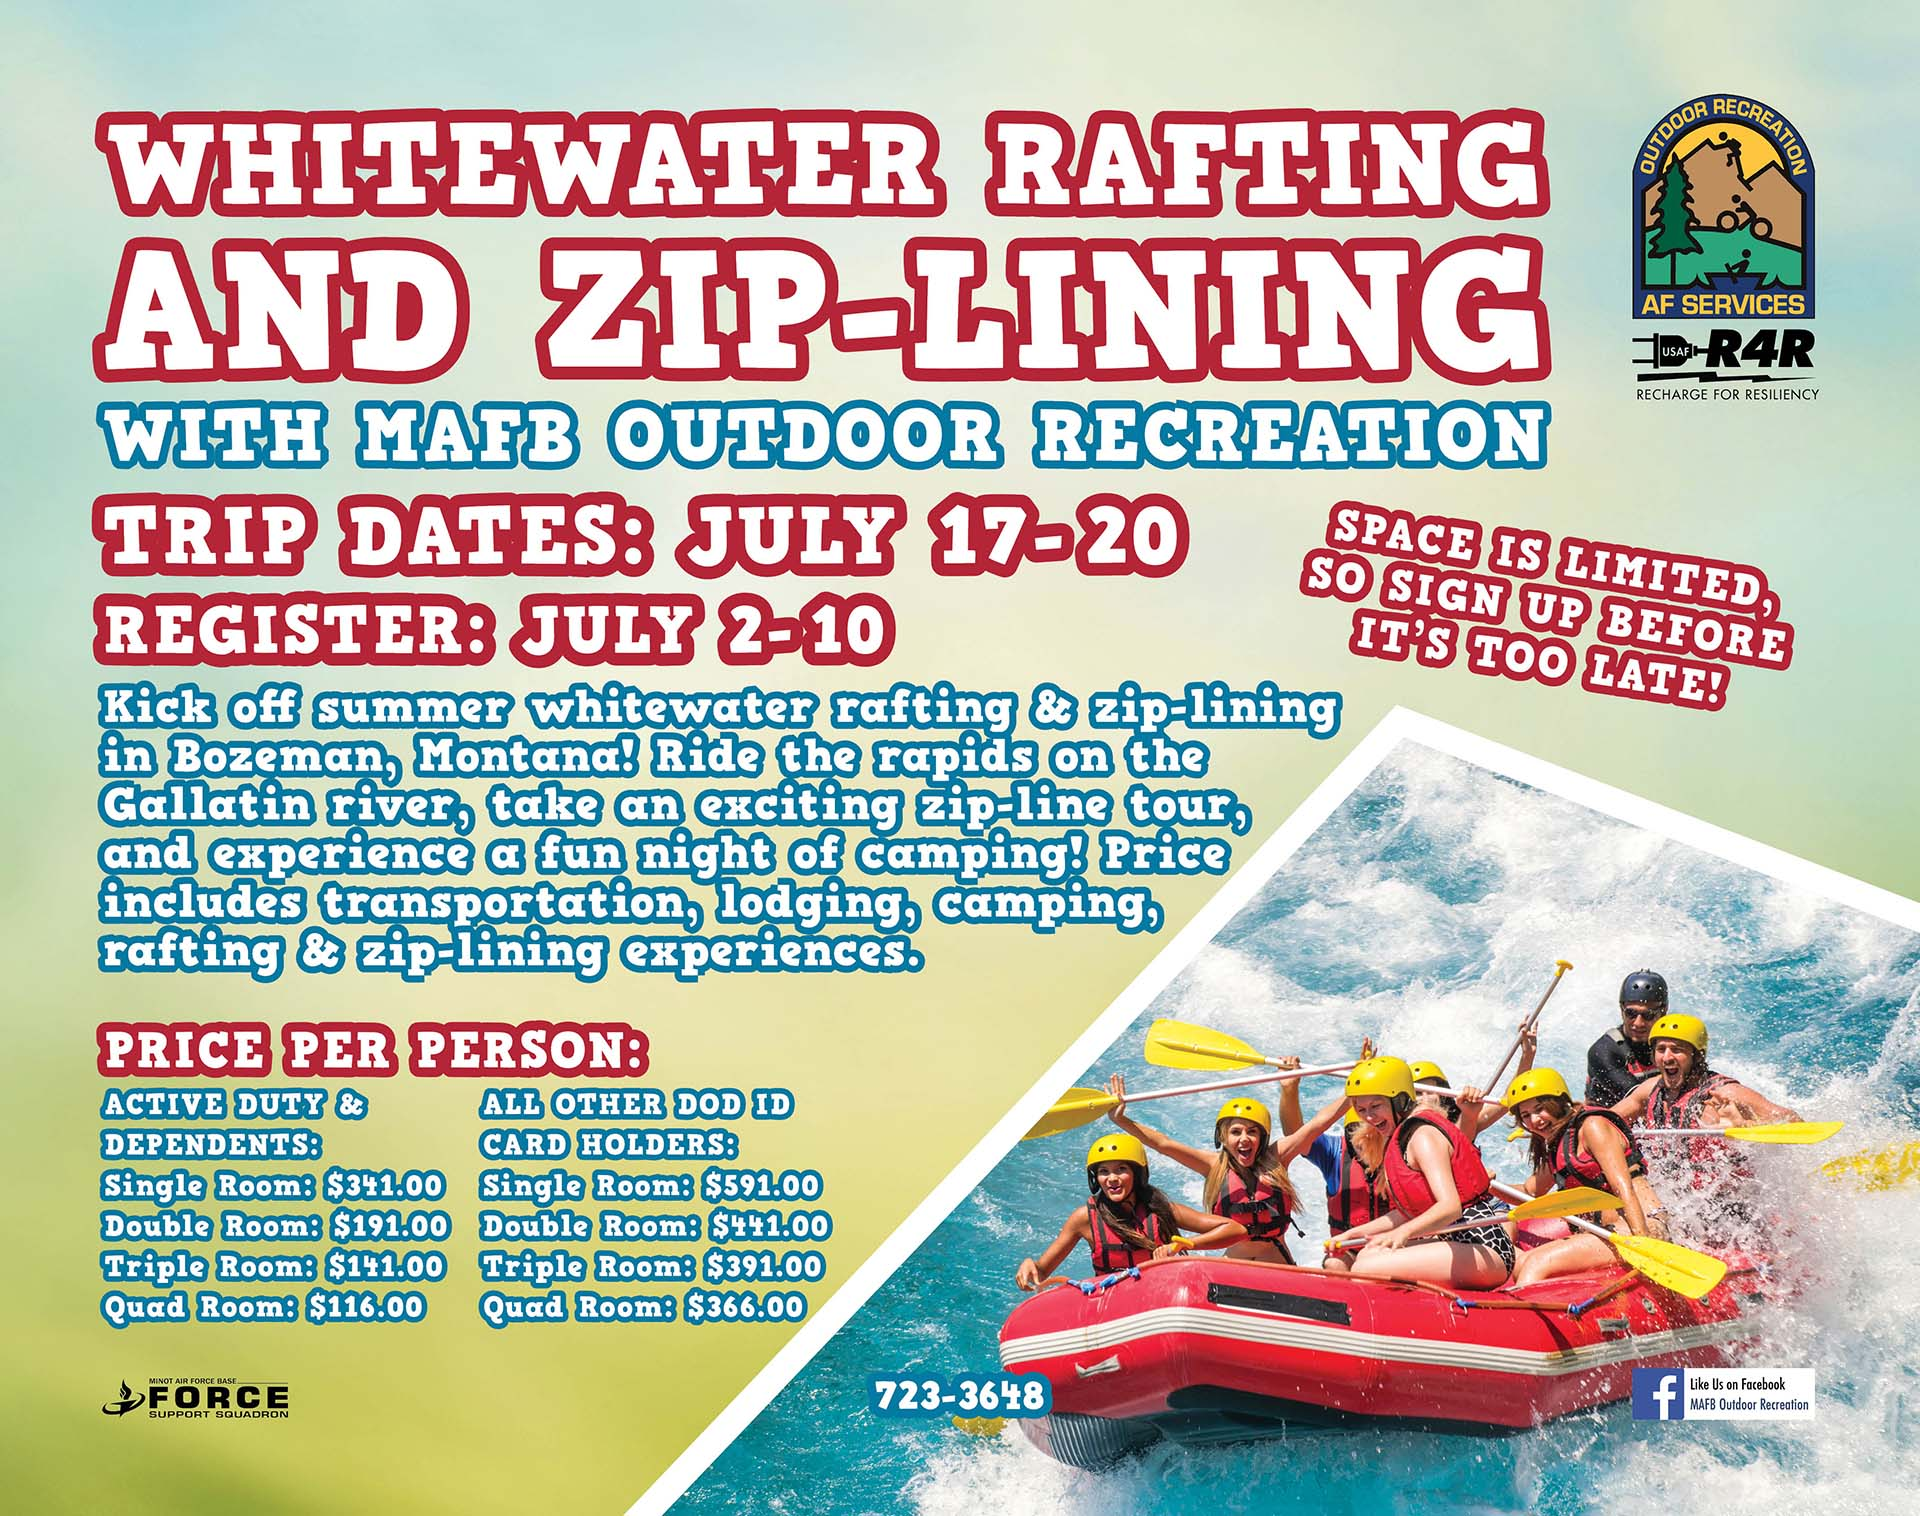 REGISTRATION CLOSES for Whitewater Rafting & Zip-Lining Trip to Bozeman, MT